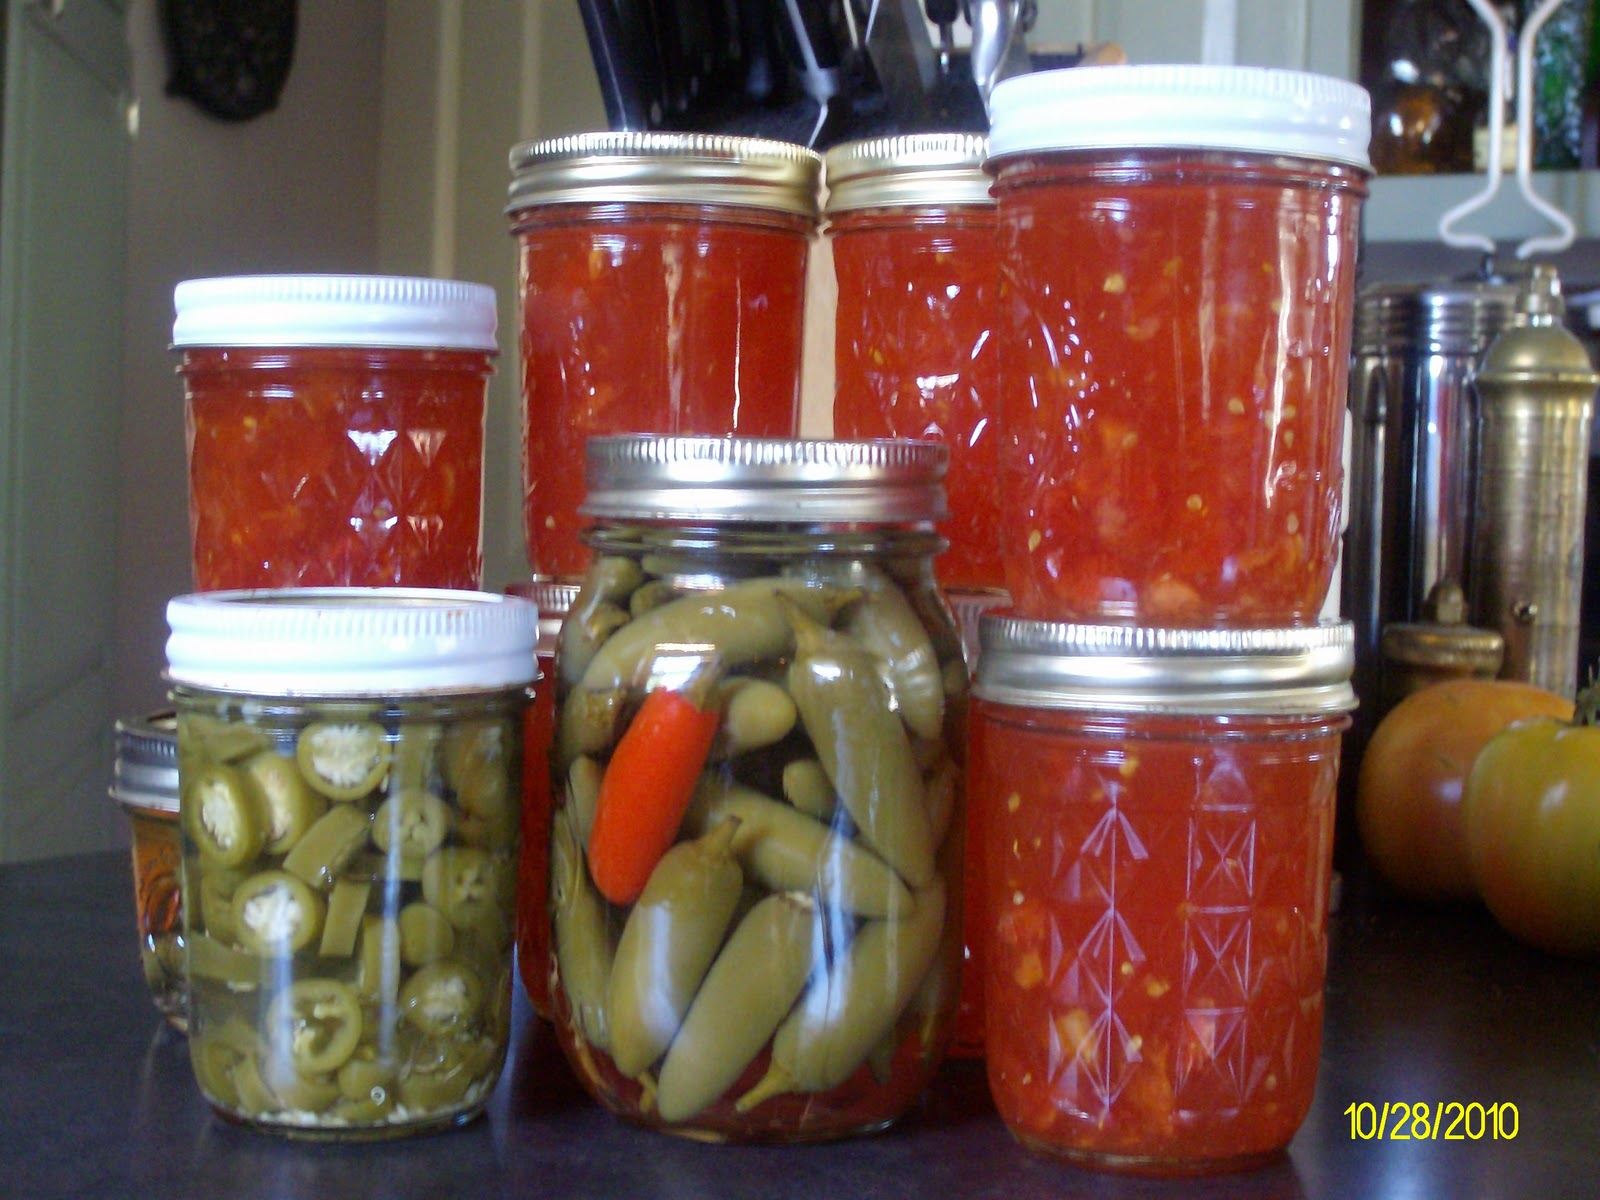 Pickled Jalapeno & Serrano Peppers and Red Tomato Jam.